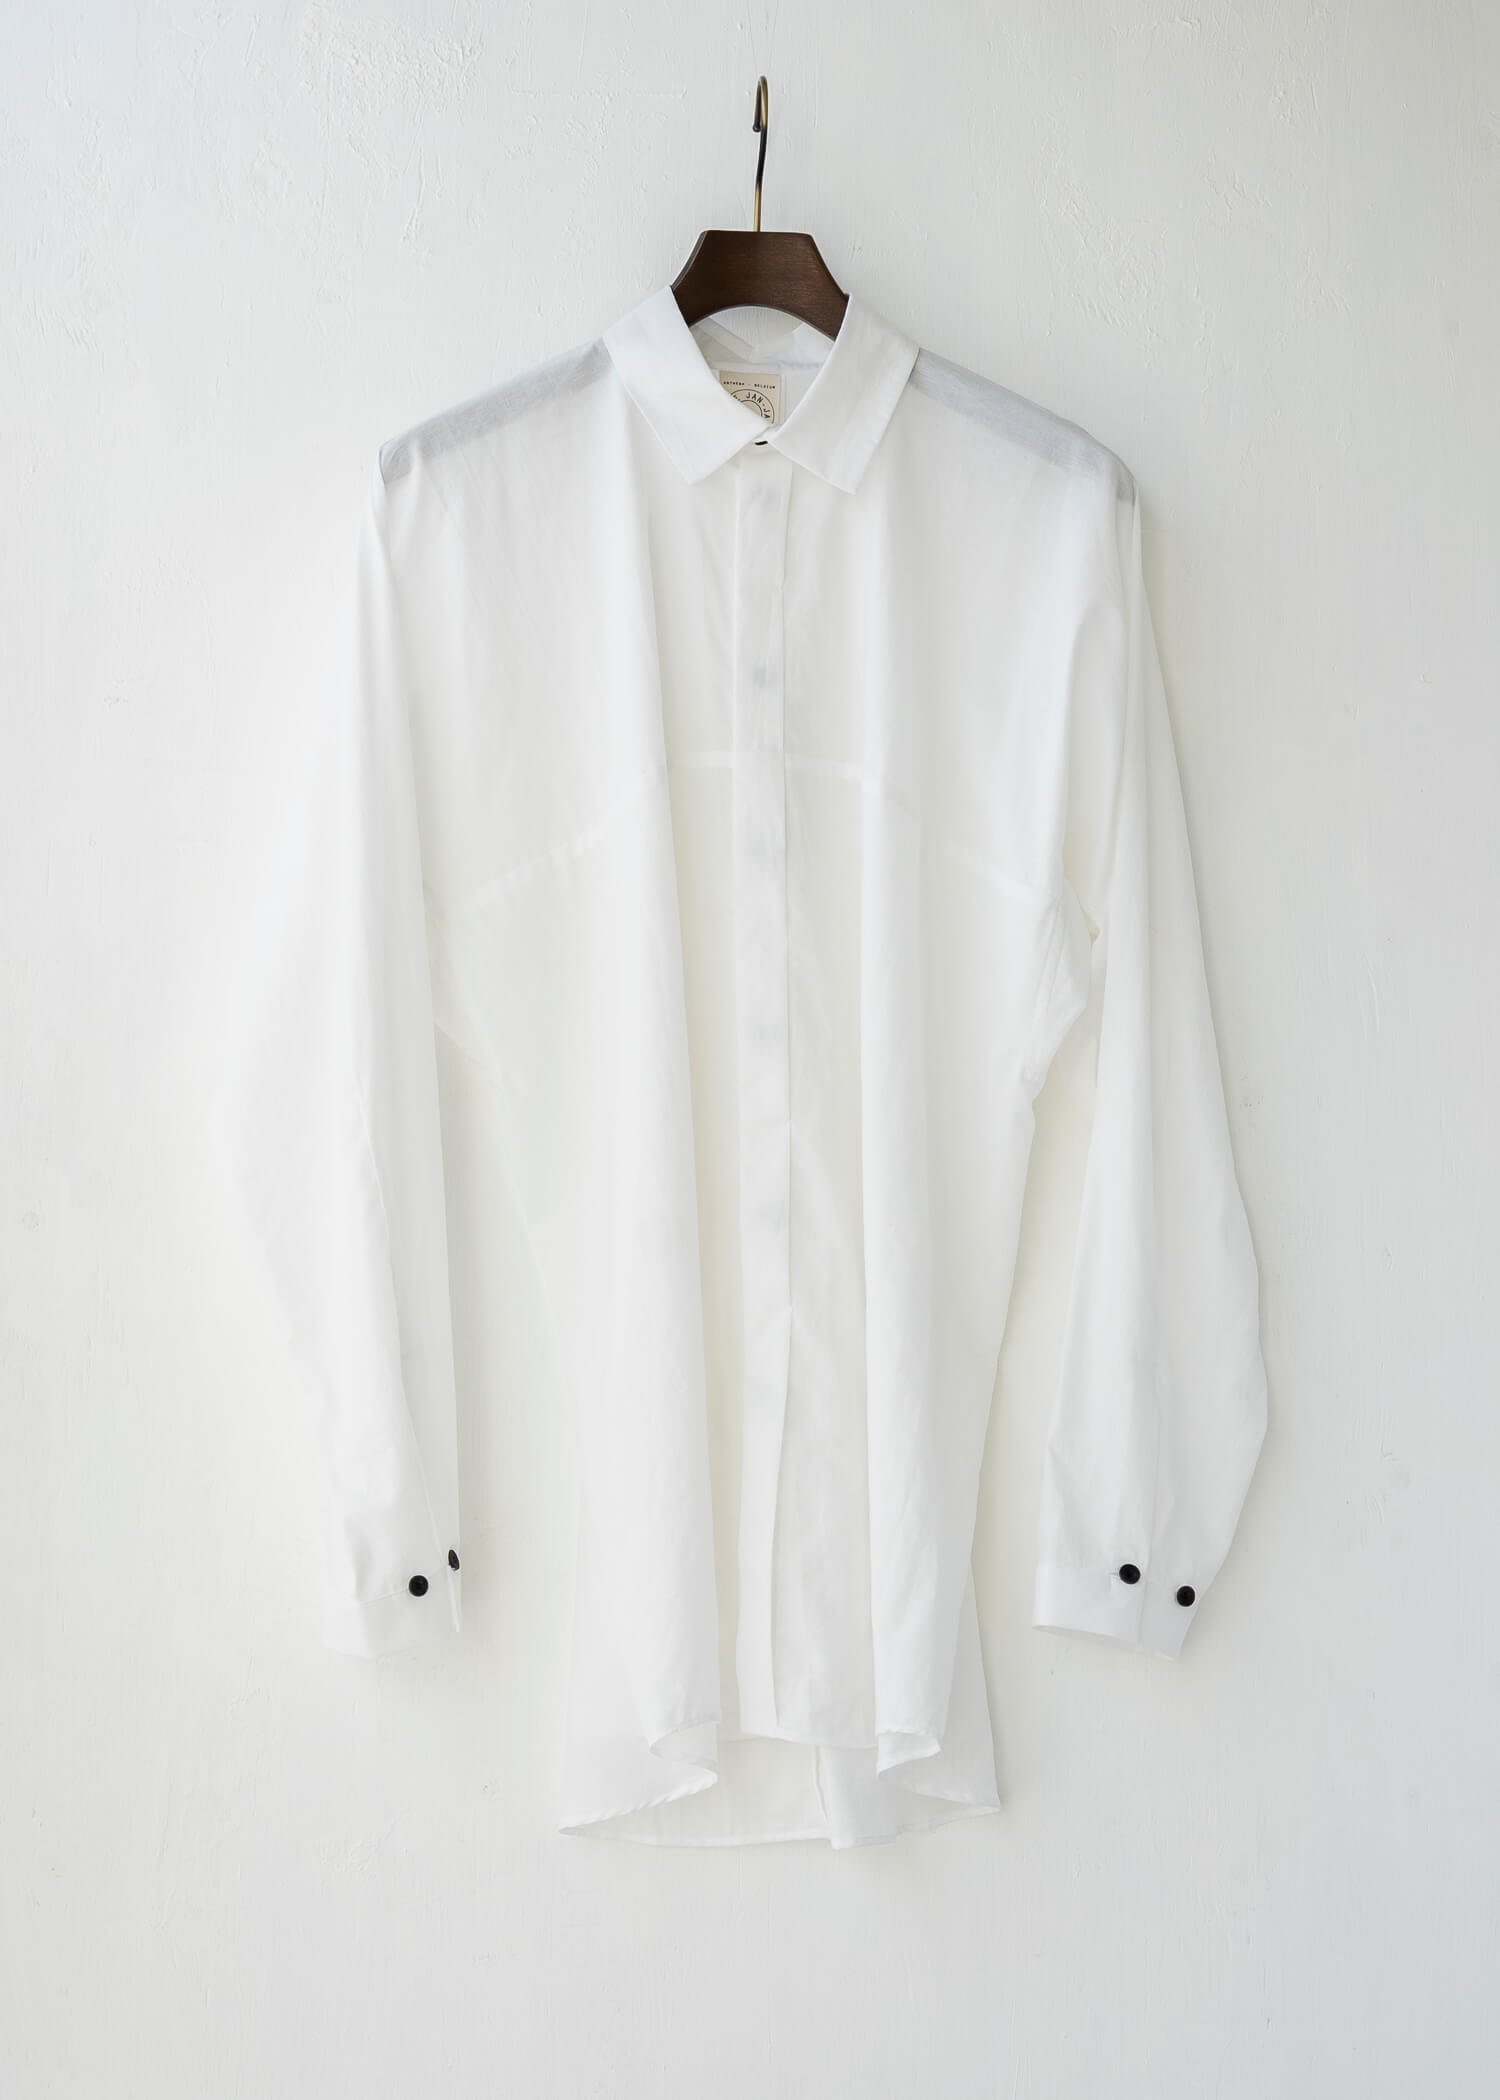 JAN-JAN VAN ESSCHE / SHIRT#77 LOOSE FIT SHIRT OFF-WHITE CO/LI TYPEWRITTER